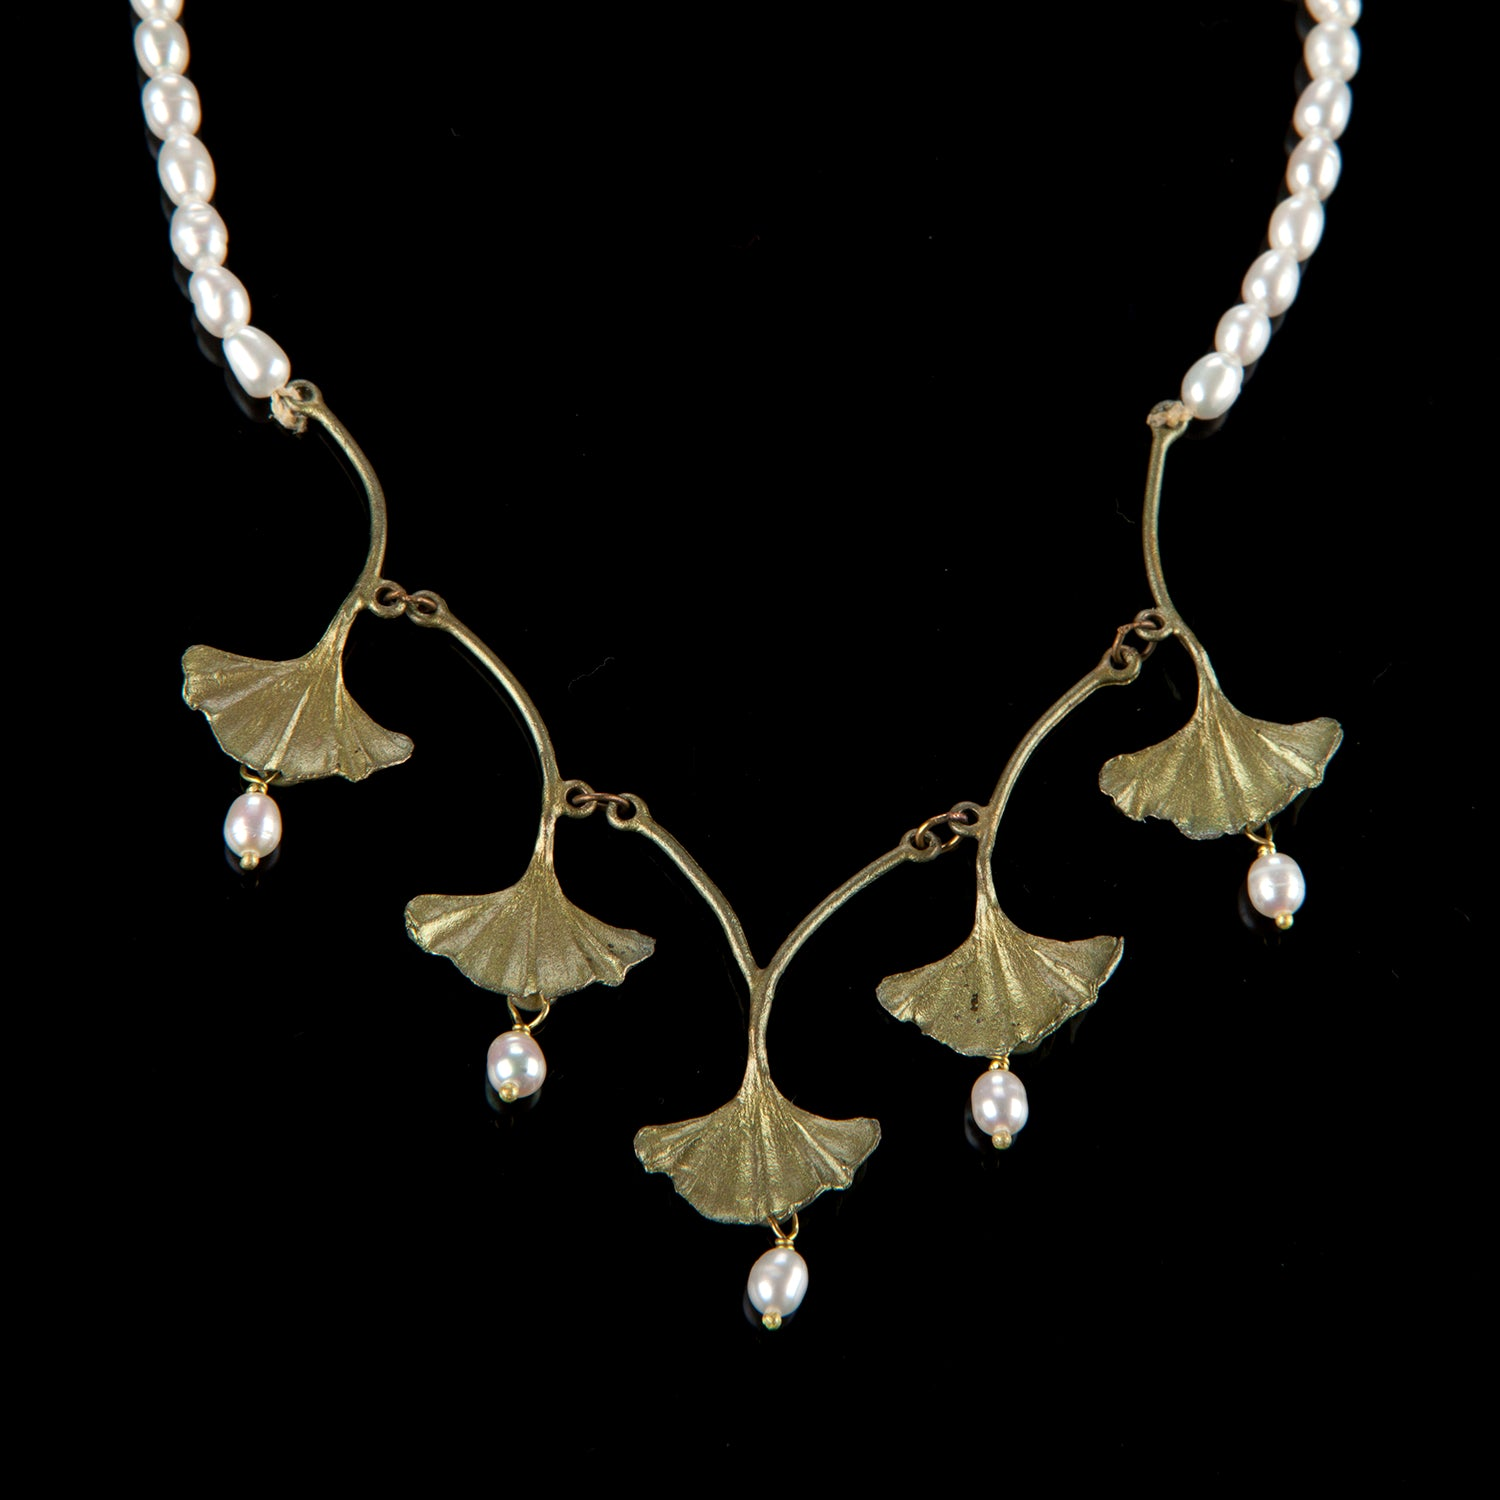 Ginkgo Necklace - Pearl Drops